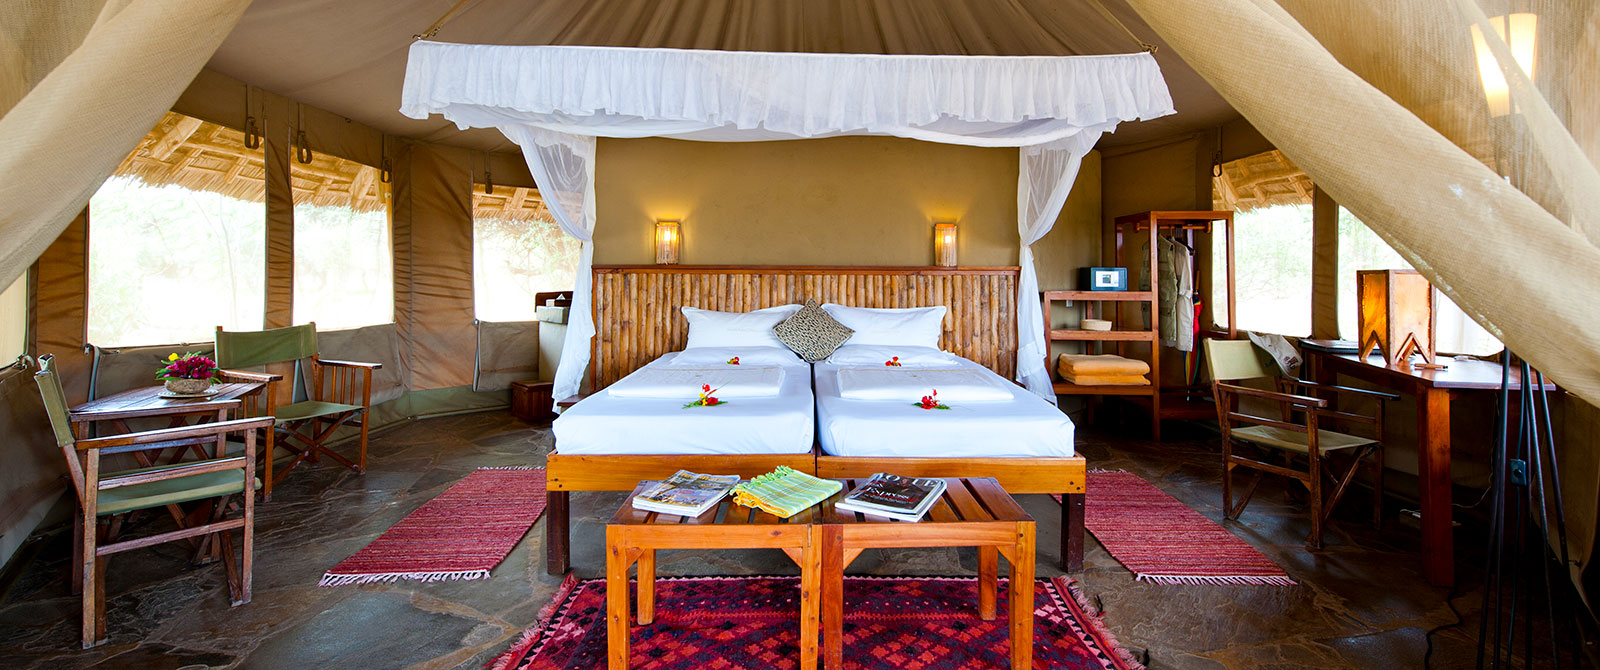 Luxury Tented Suite at Severin Camp - Tsavo West National Park Kenya - Luxury Air Safari: Kenya Adventure Package